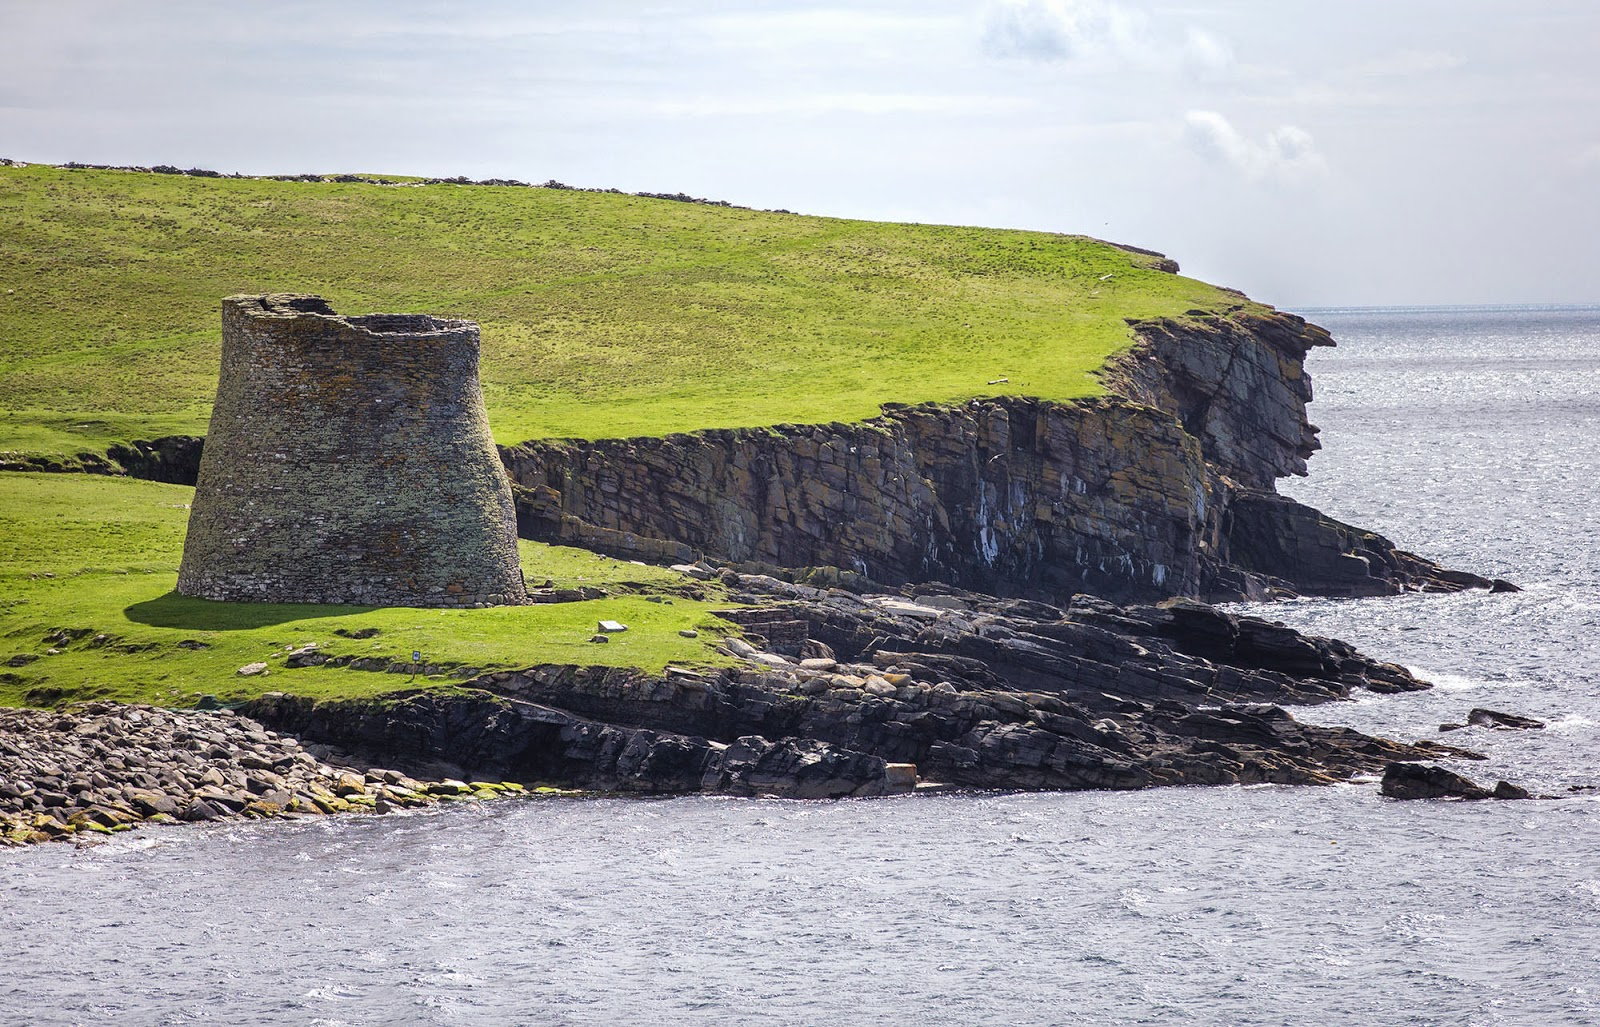 Mousa Broch, The Shetland Islands, Scotland